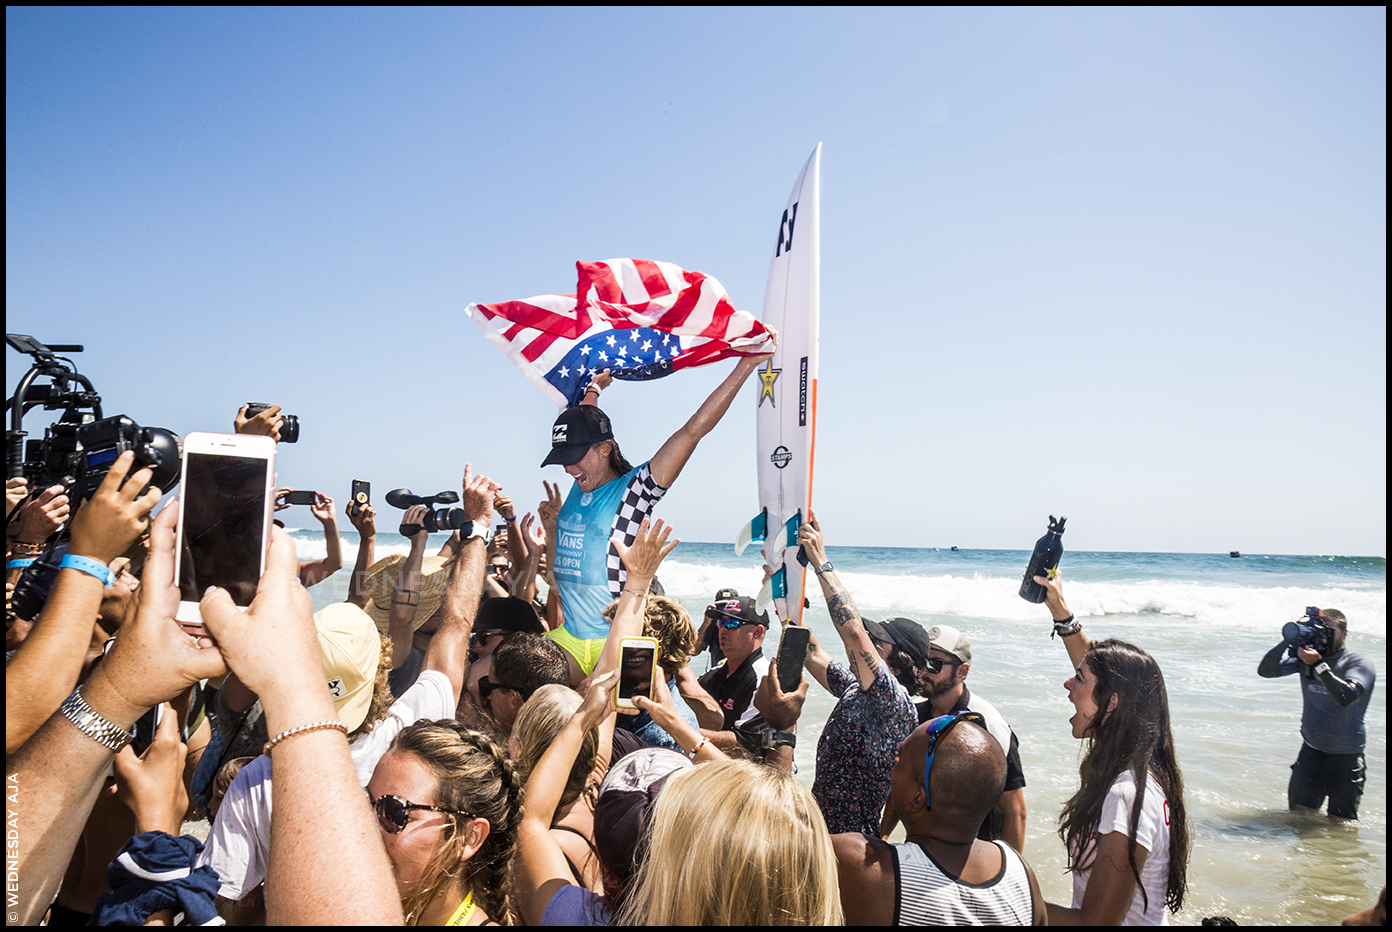 Courtney Conlogue claims women's title at  US Open of Surfing  // Huntington Beach